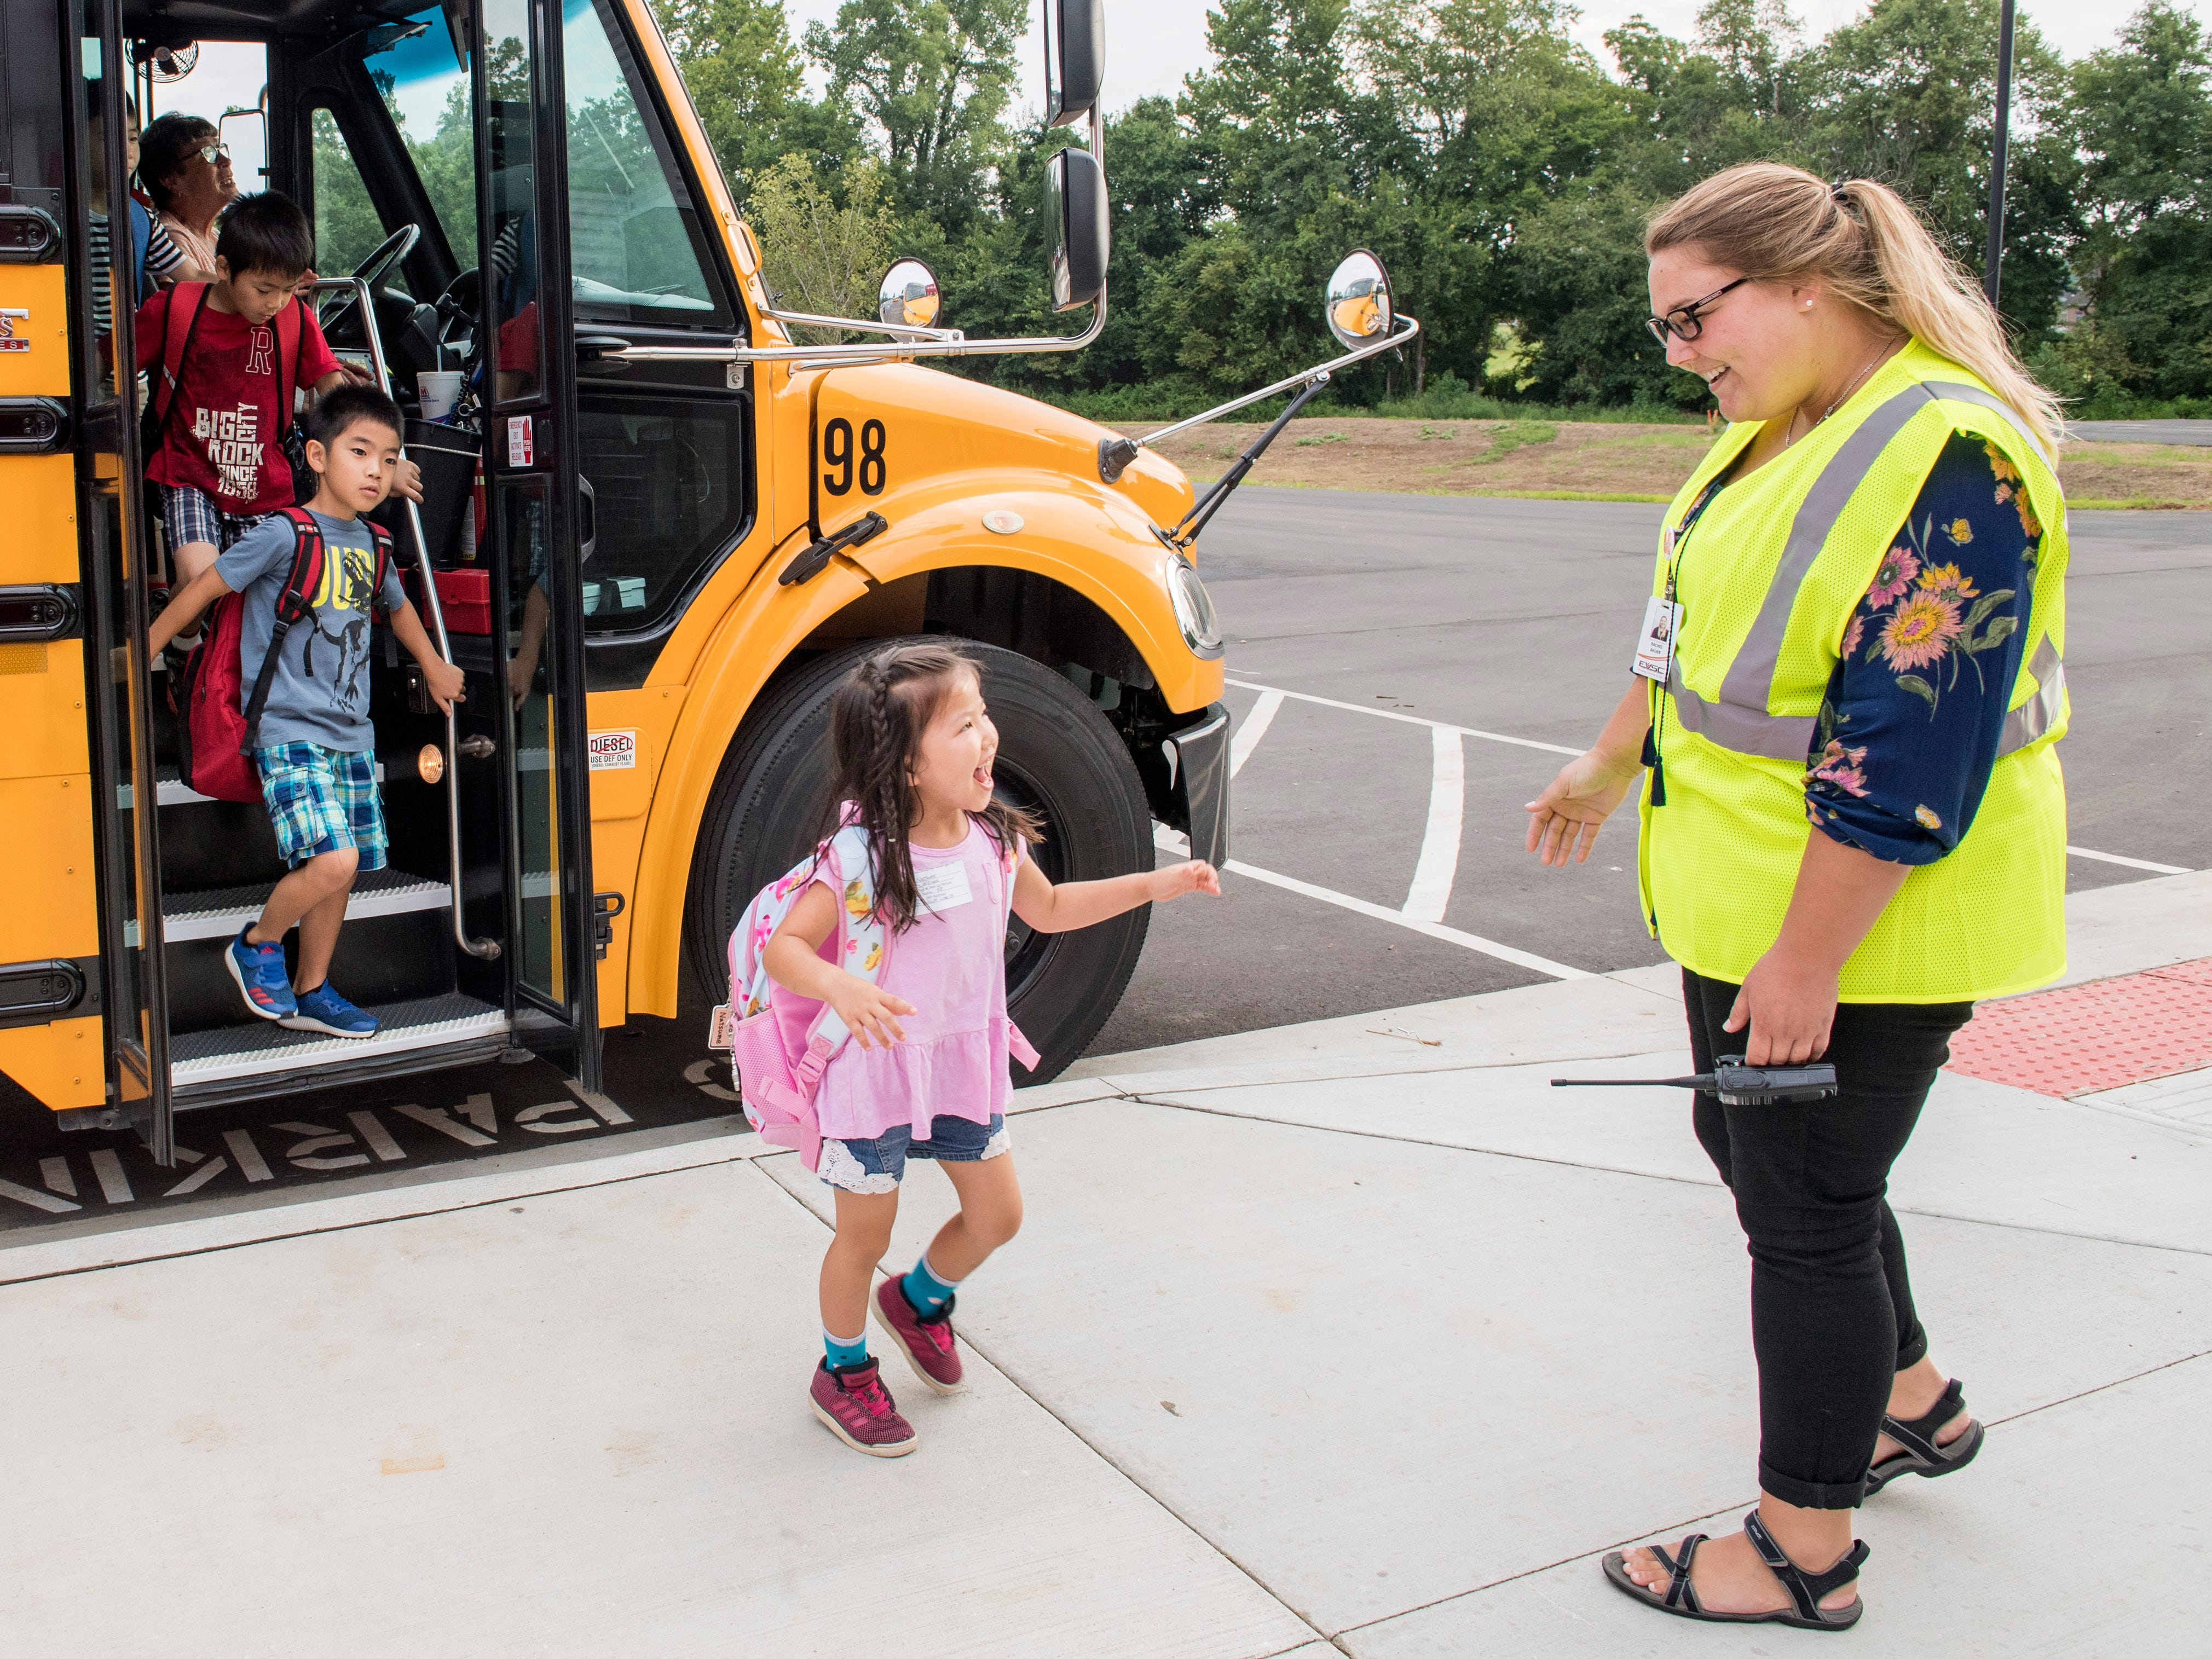 McCutchanville Elementary School counselor Rachel Bauer greets students while exiting the buses on the first day of school Wednesday, August 8, 2018.